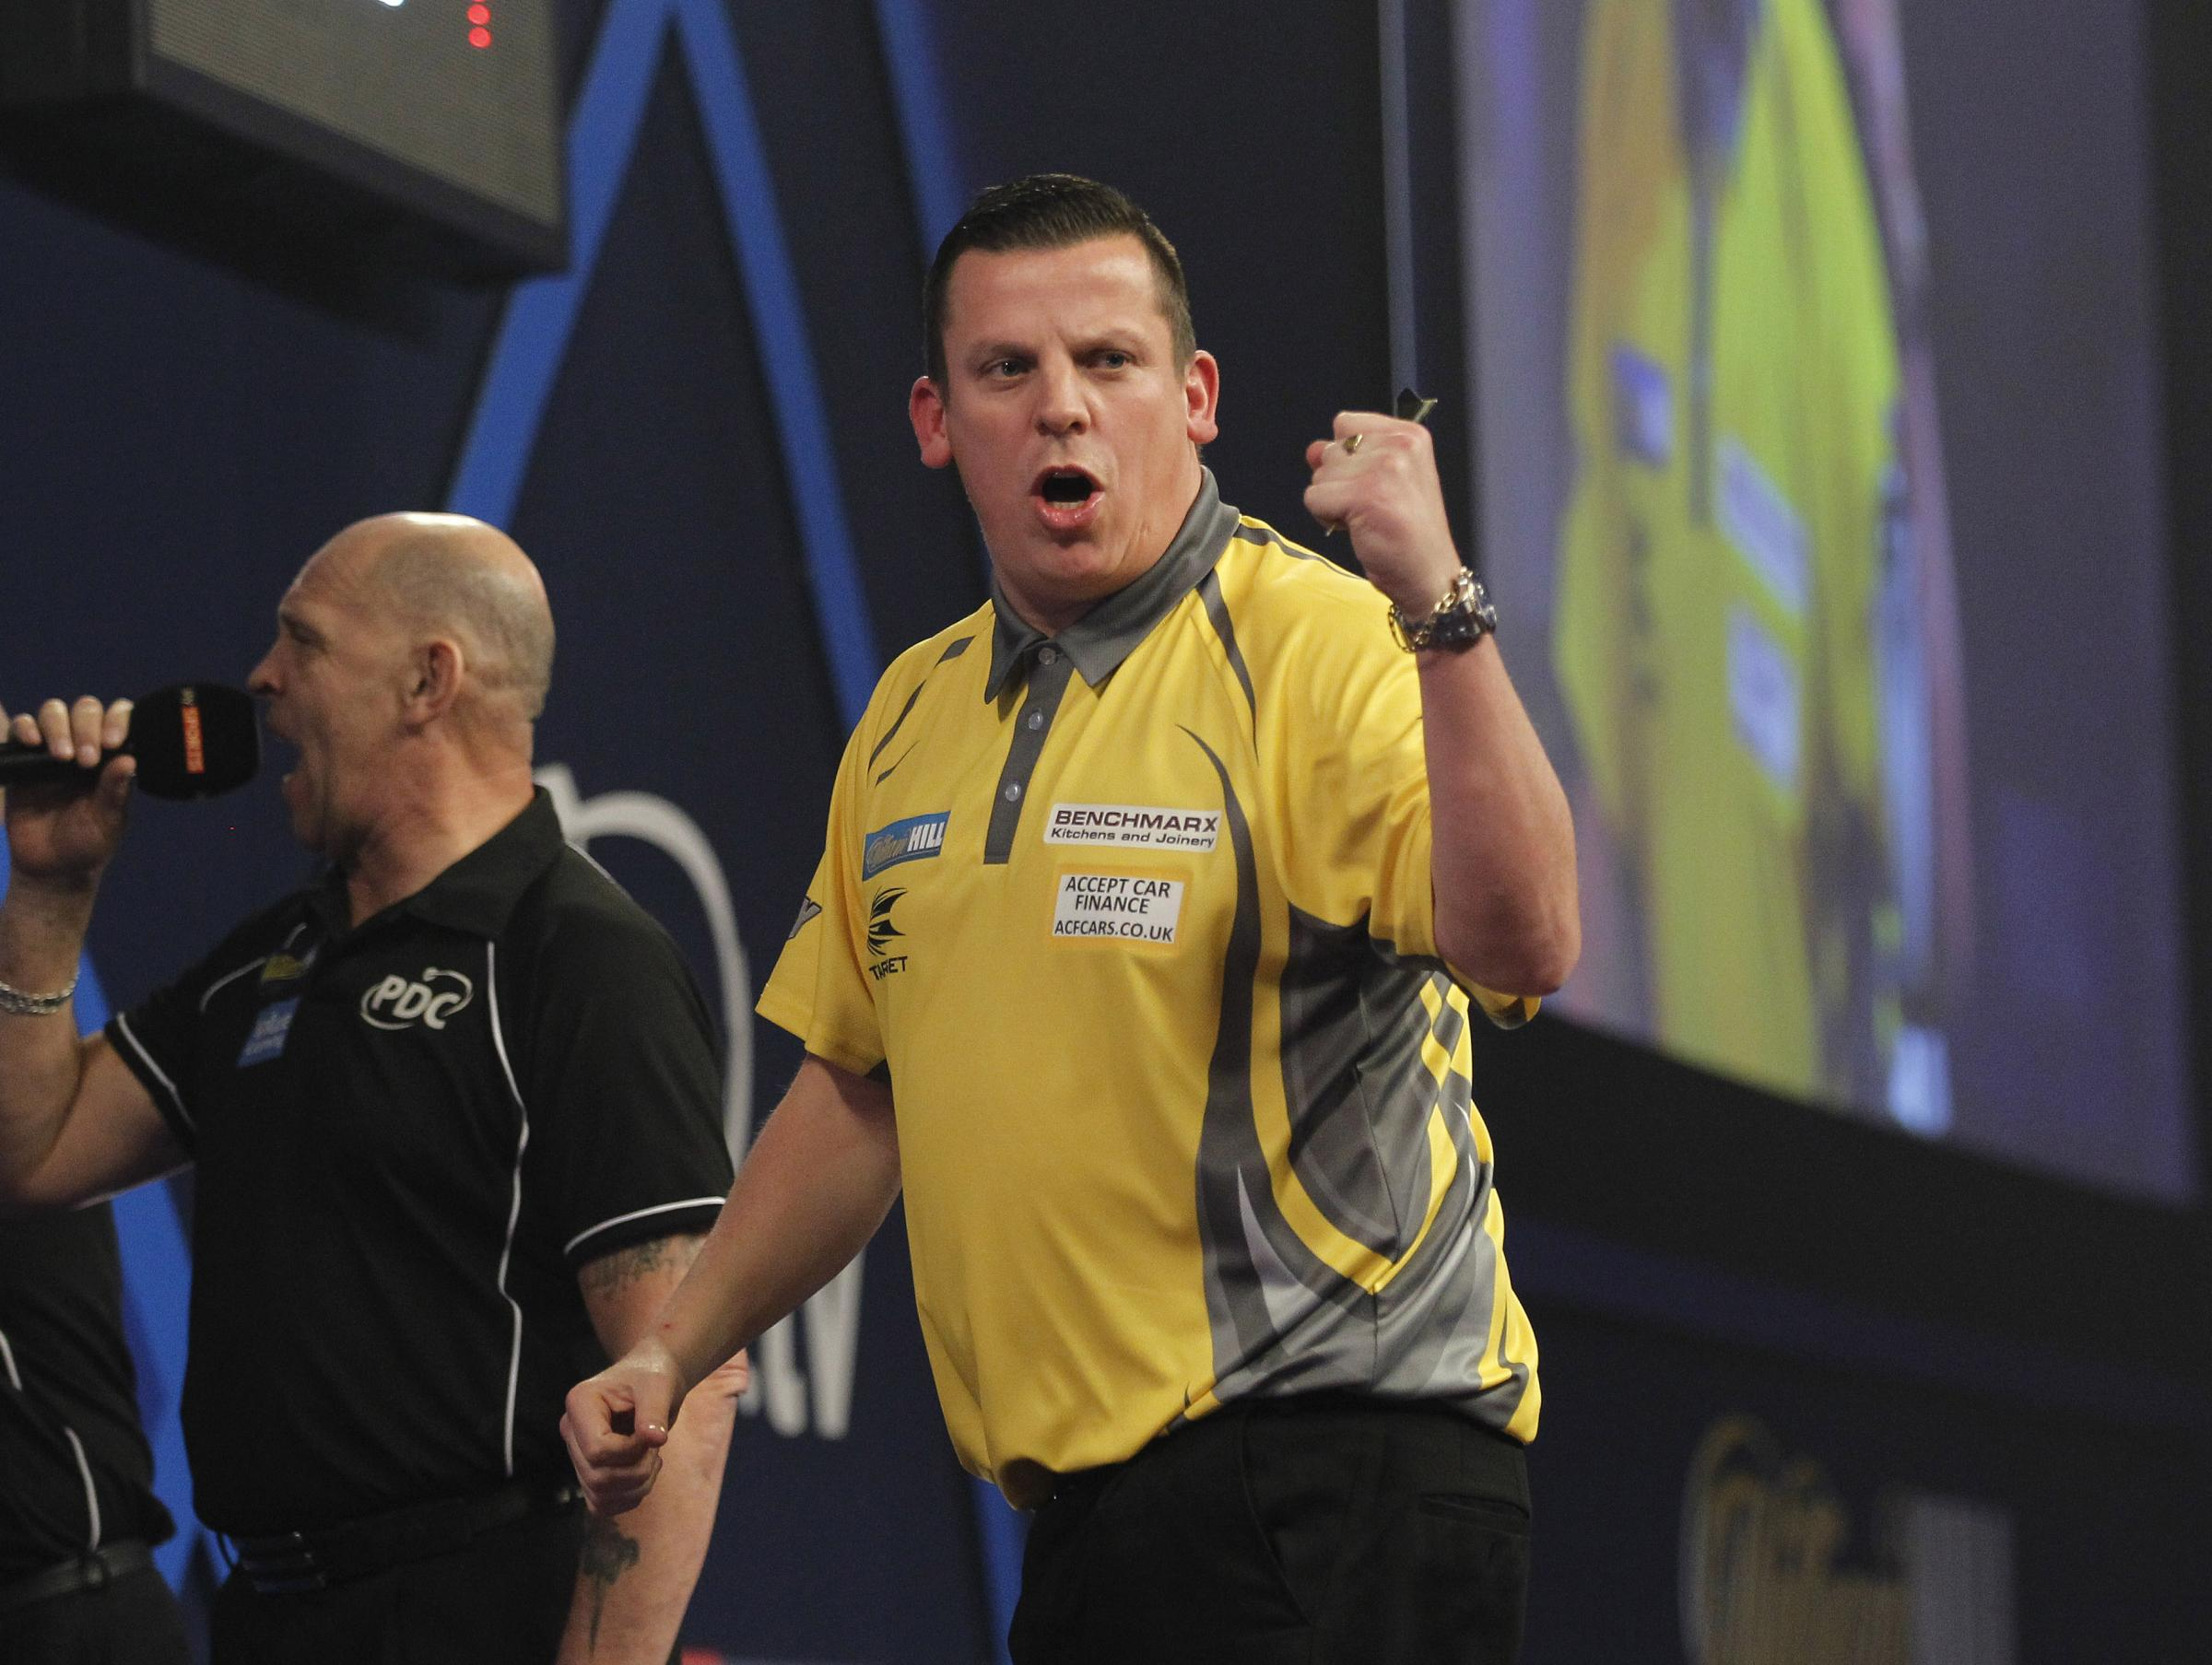 Dave Chisnall in action in last year's World Championships. Picture: Lawrence Lustig/PDC